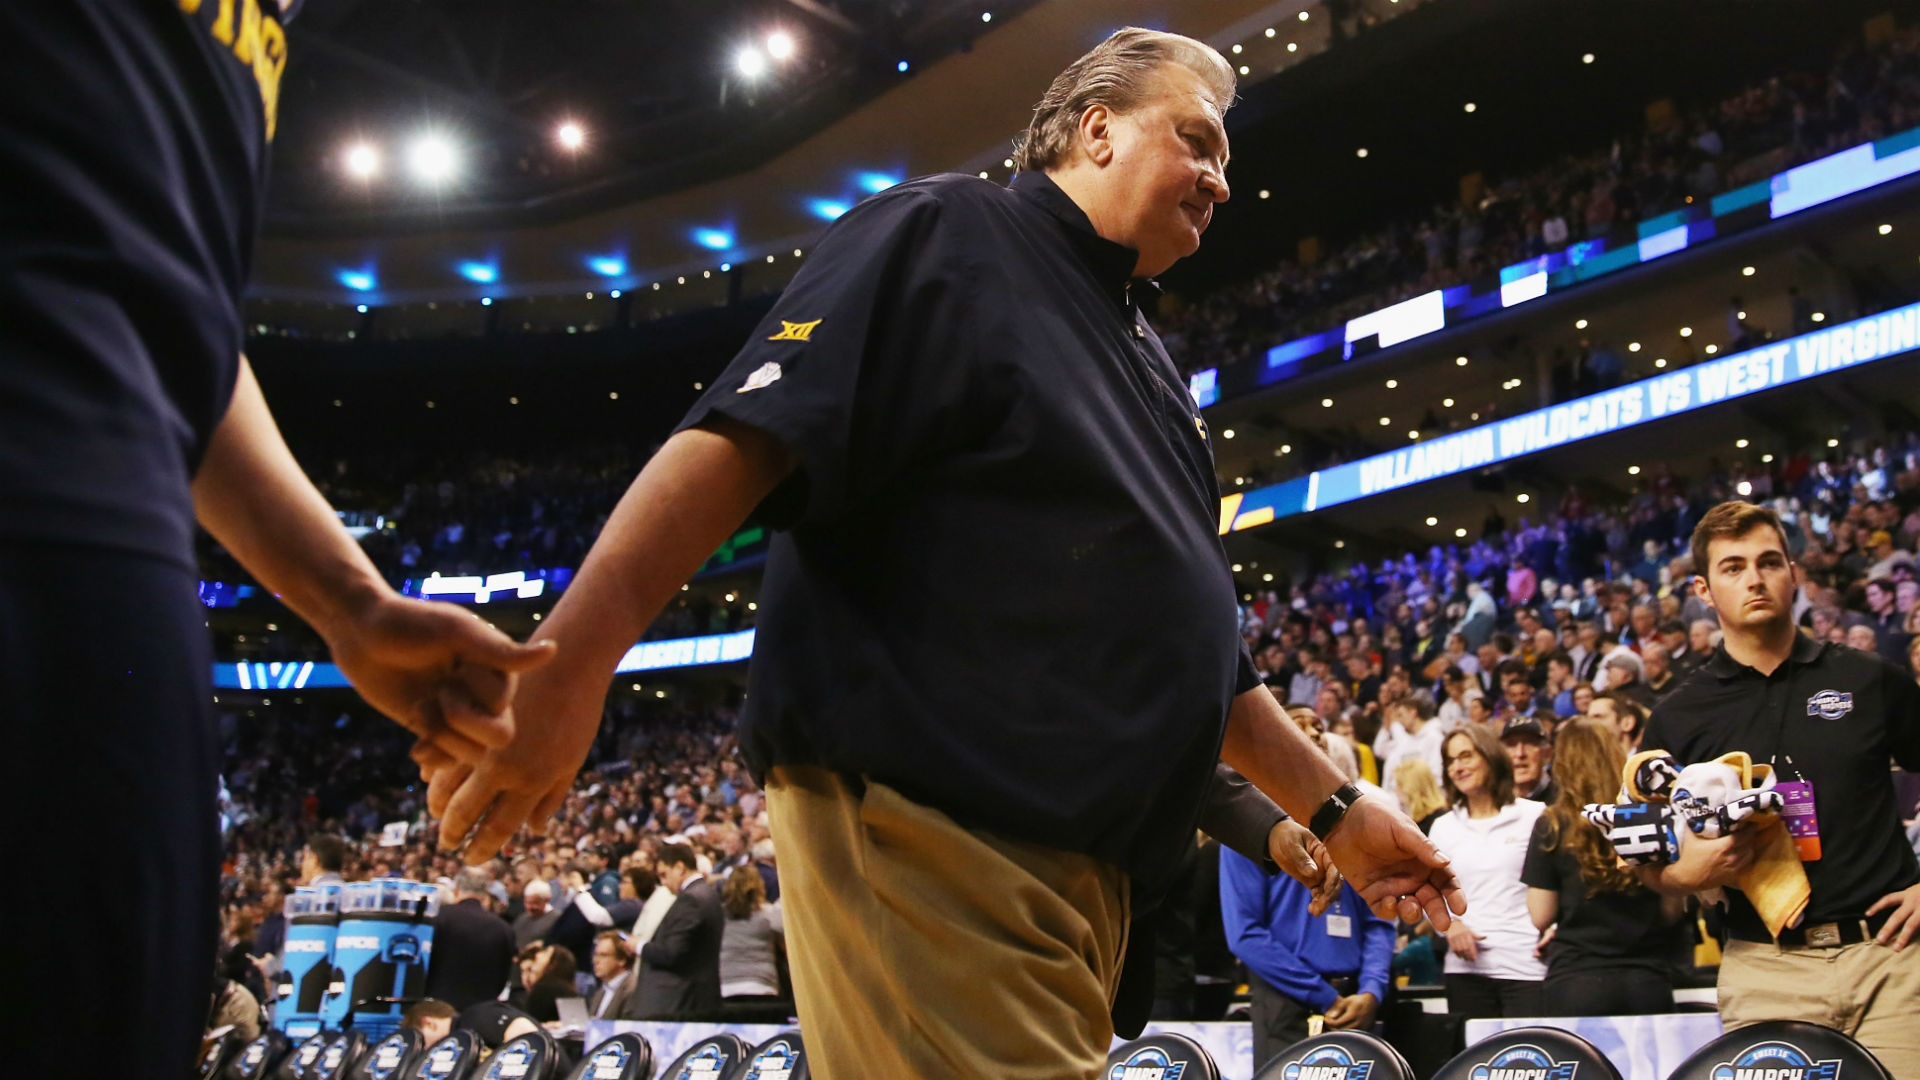 Bob Huggins' ascent to tie Adolph Rupp in career wins has him walking among legends